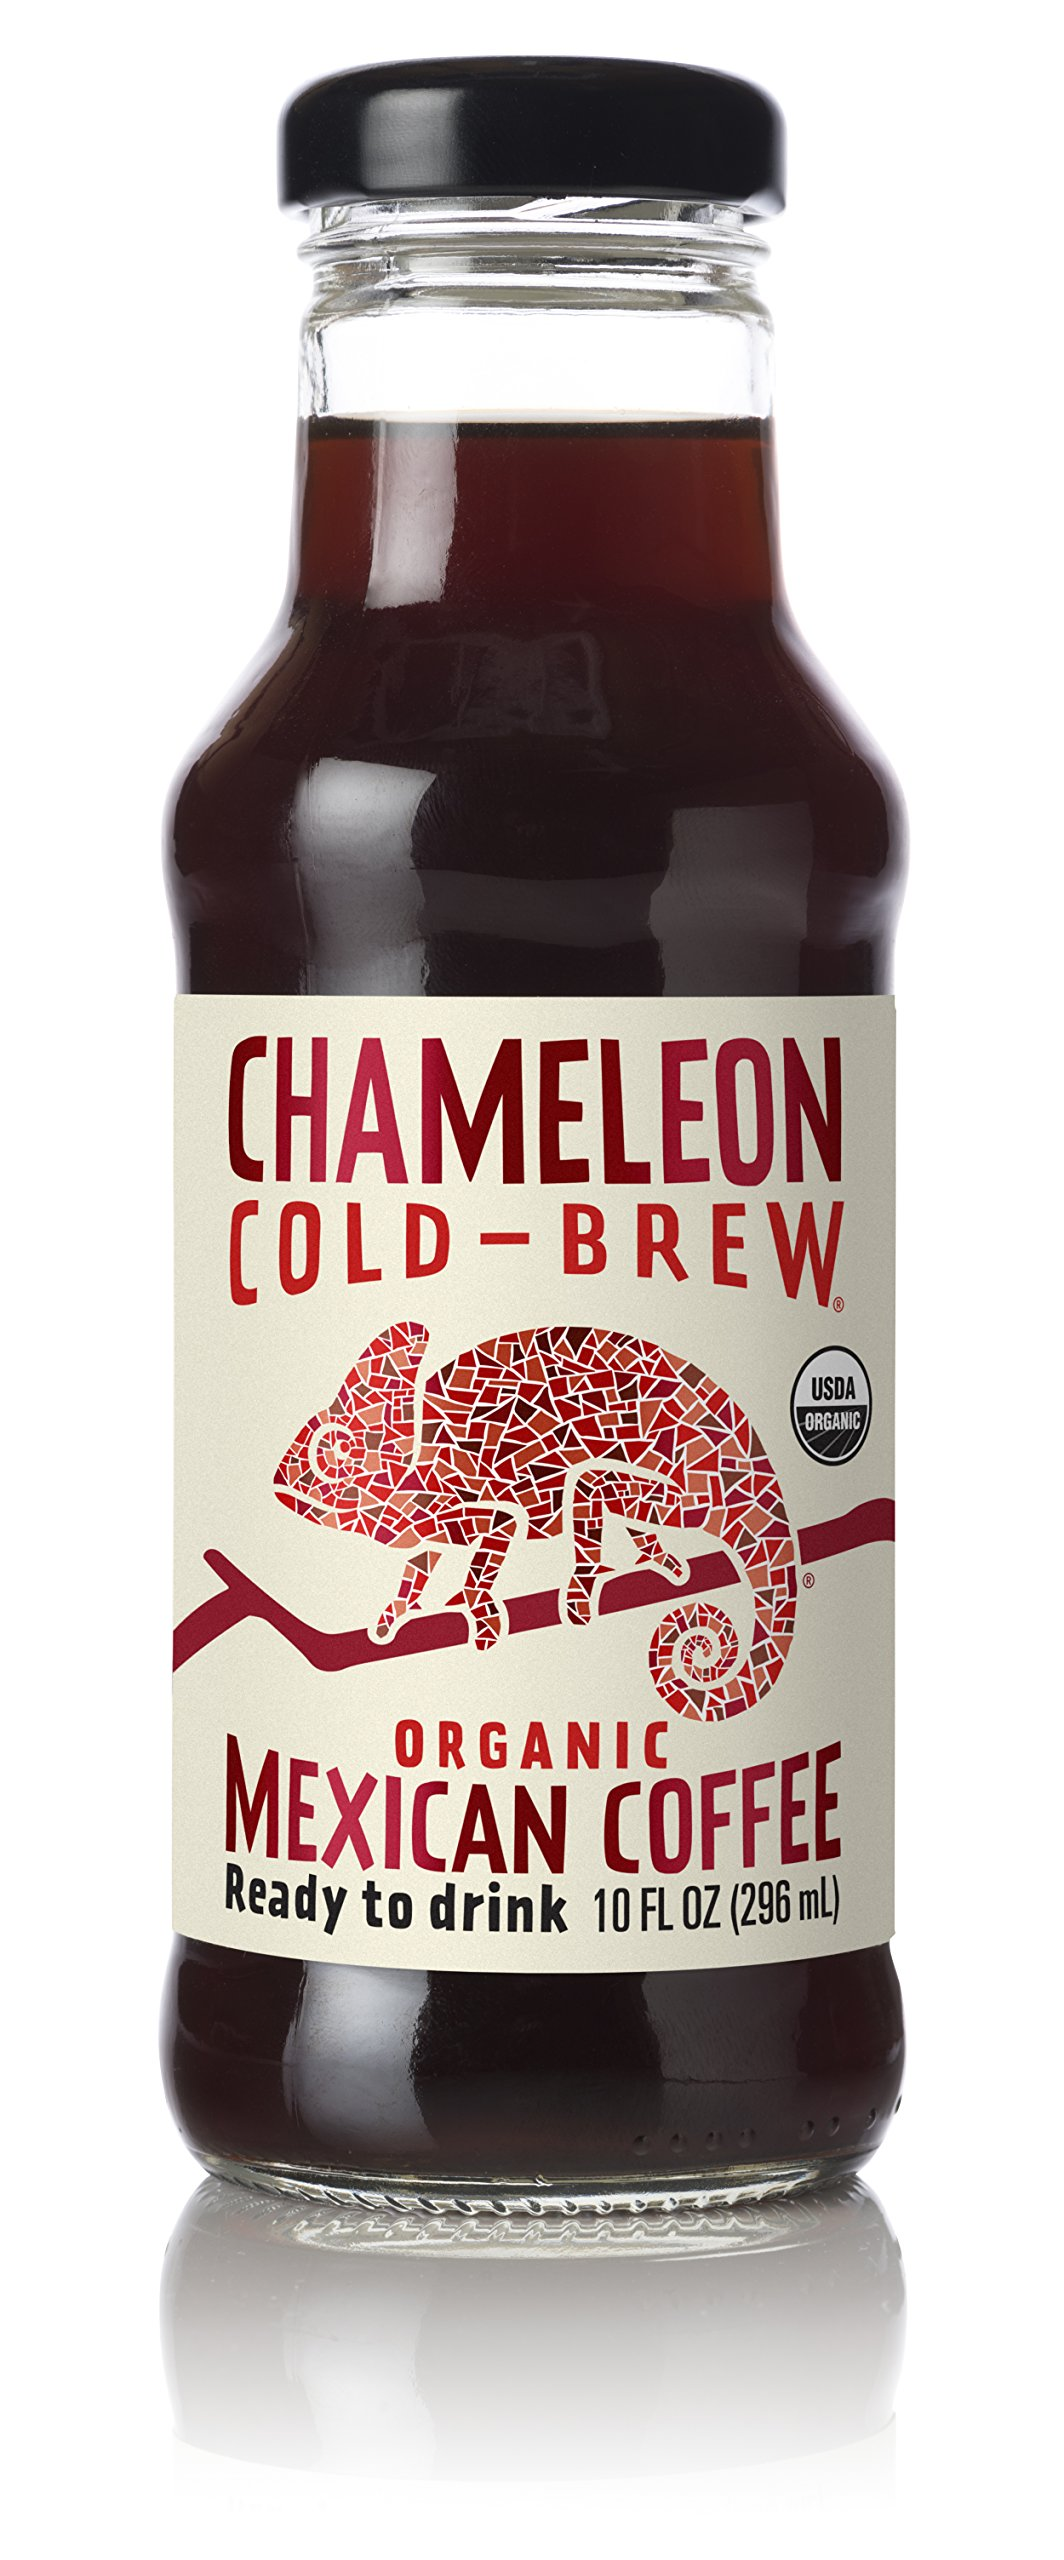 Chameleon Cold-Brew Mexican Ready-to-Drink Coffee 12 pack